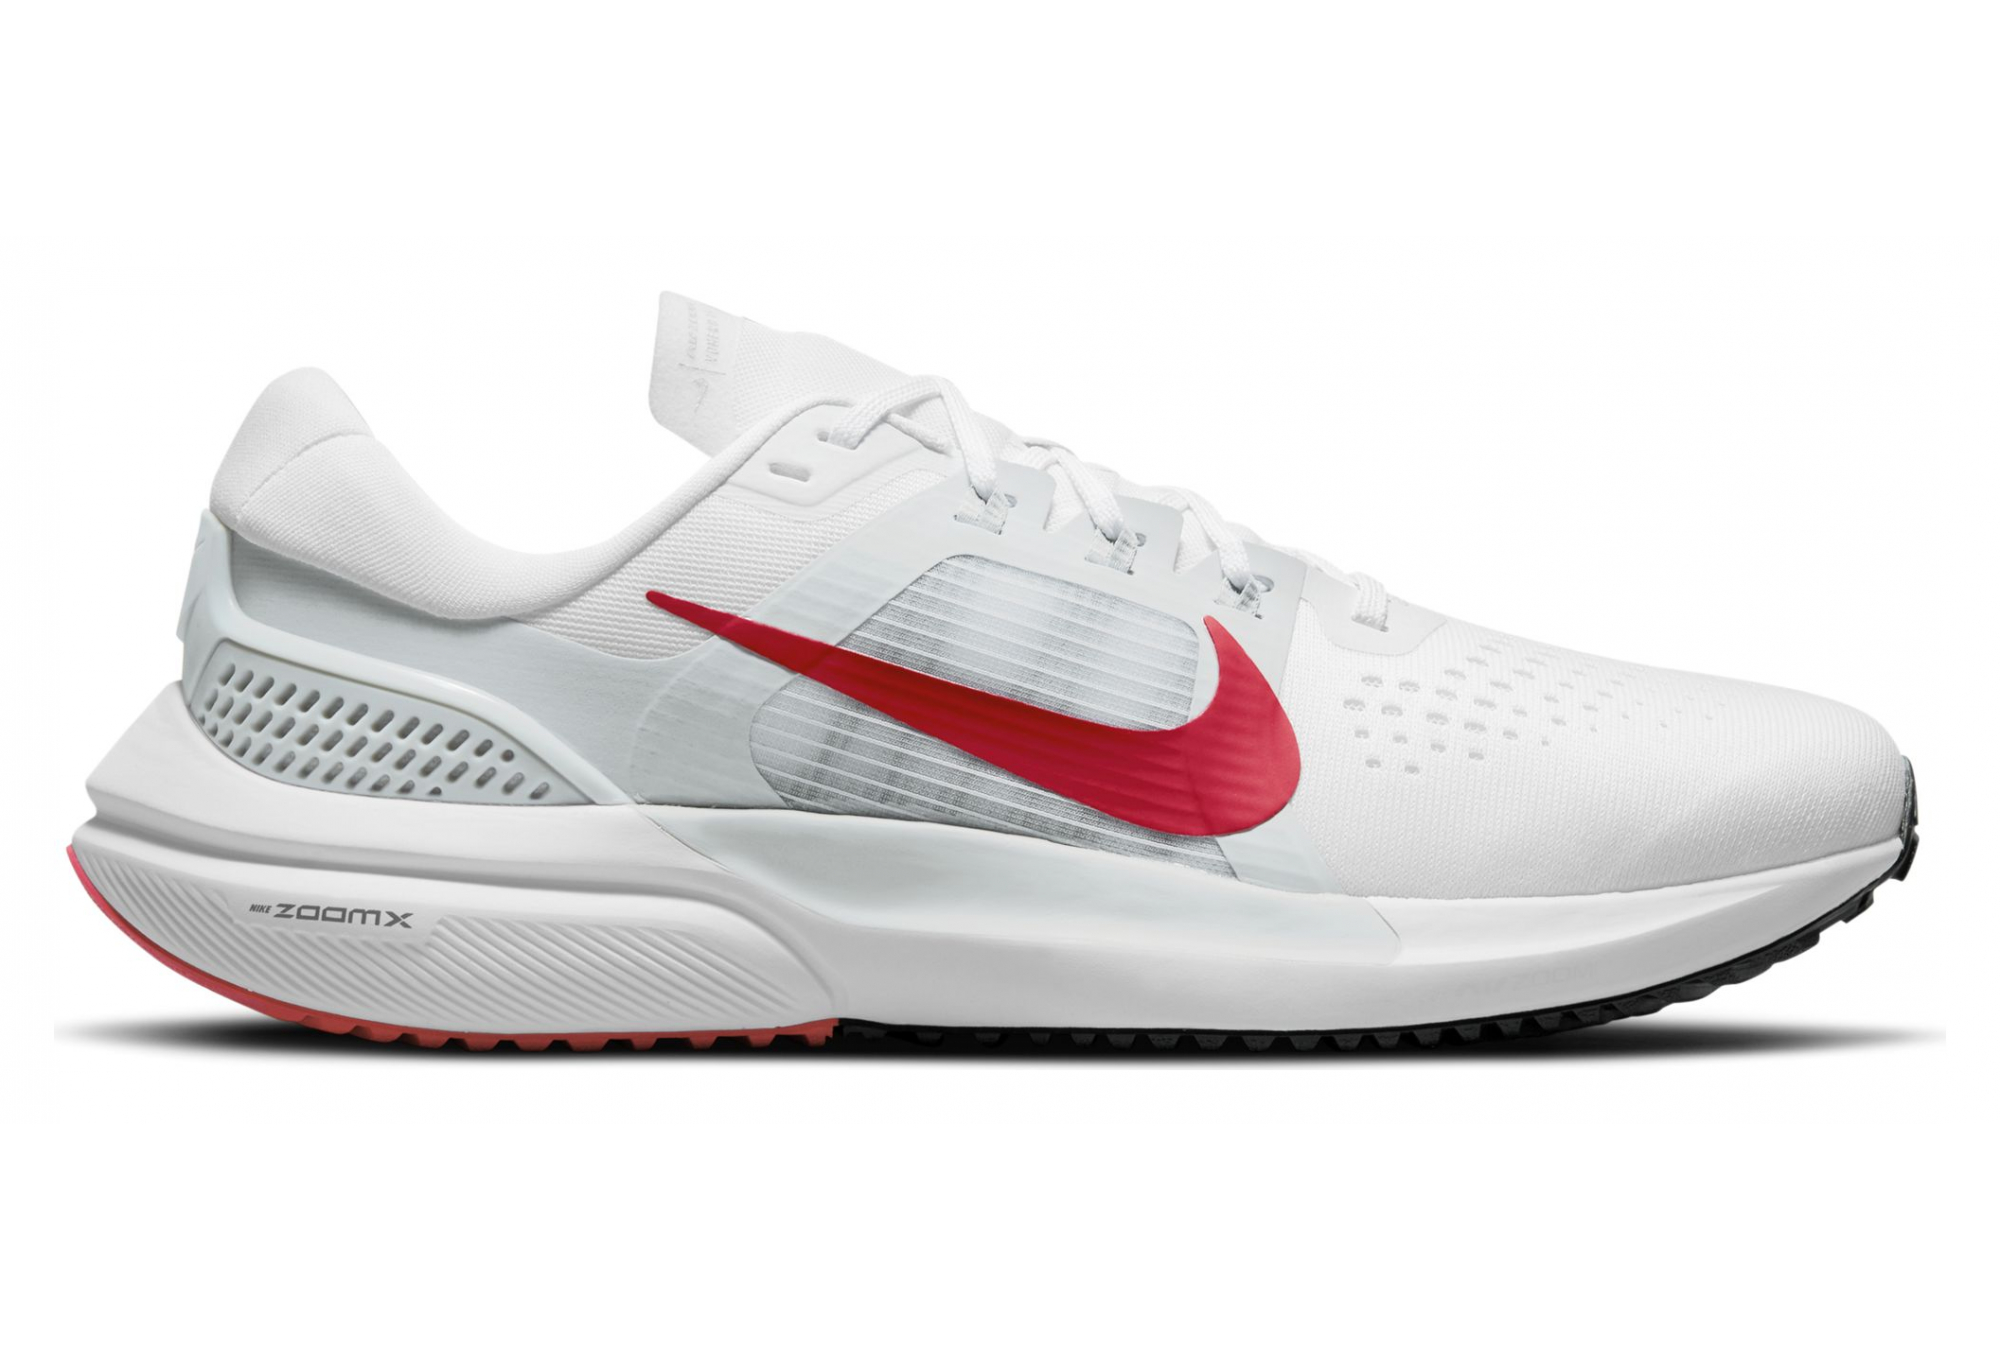 Nike Air Zoom Vomero 15 White / Red Pair of Shoes